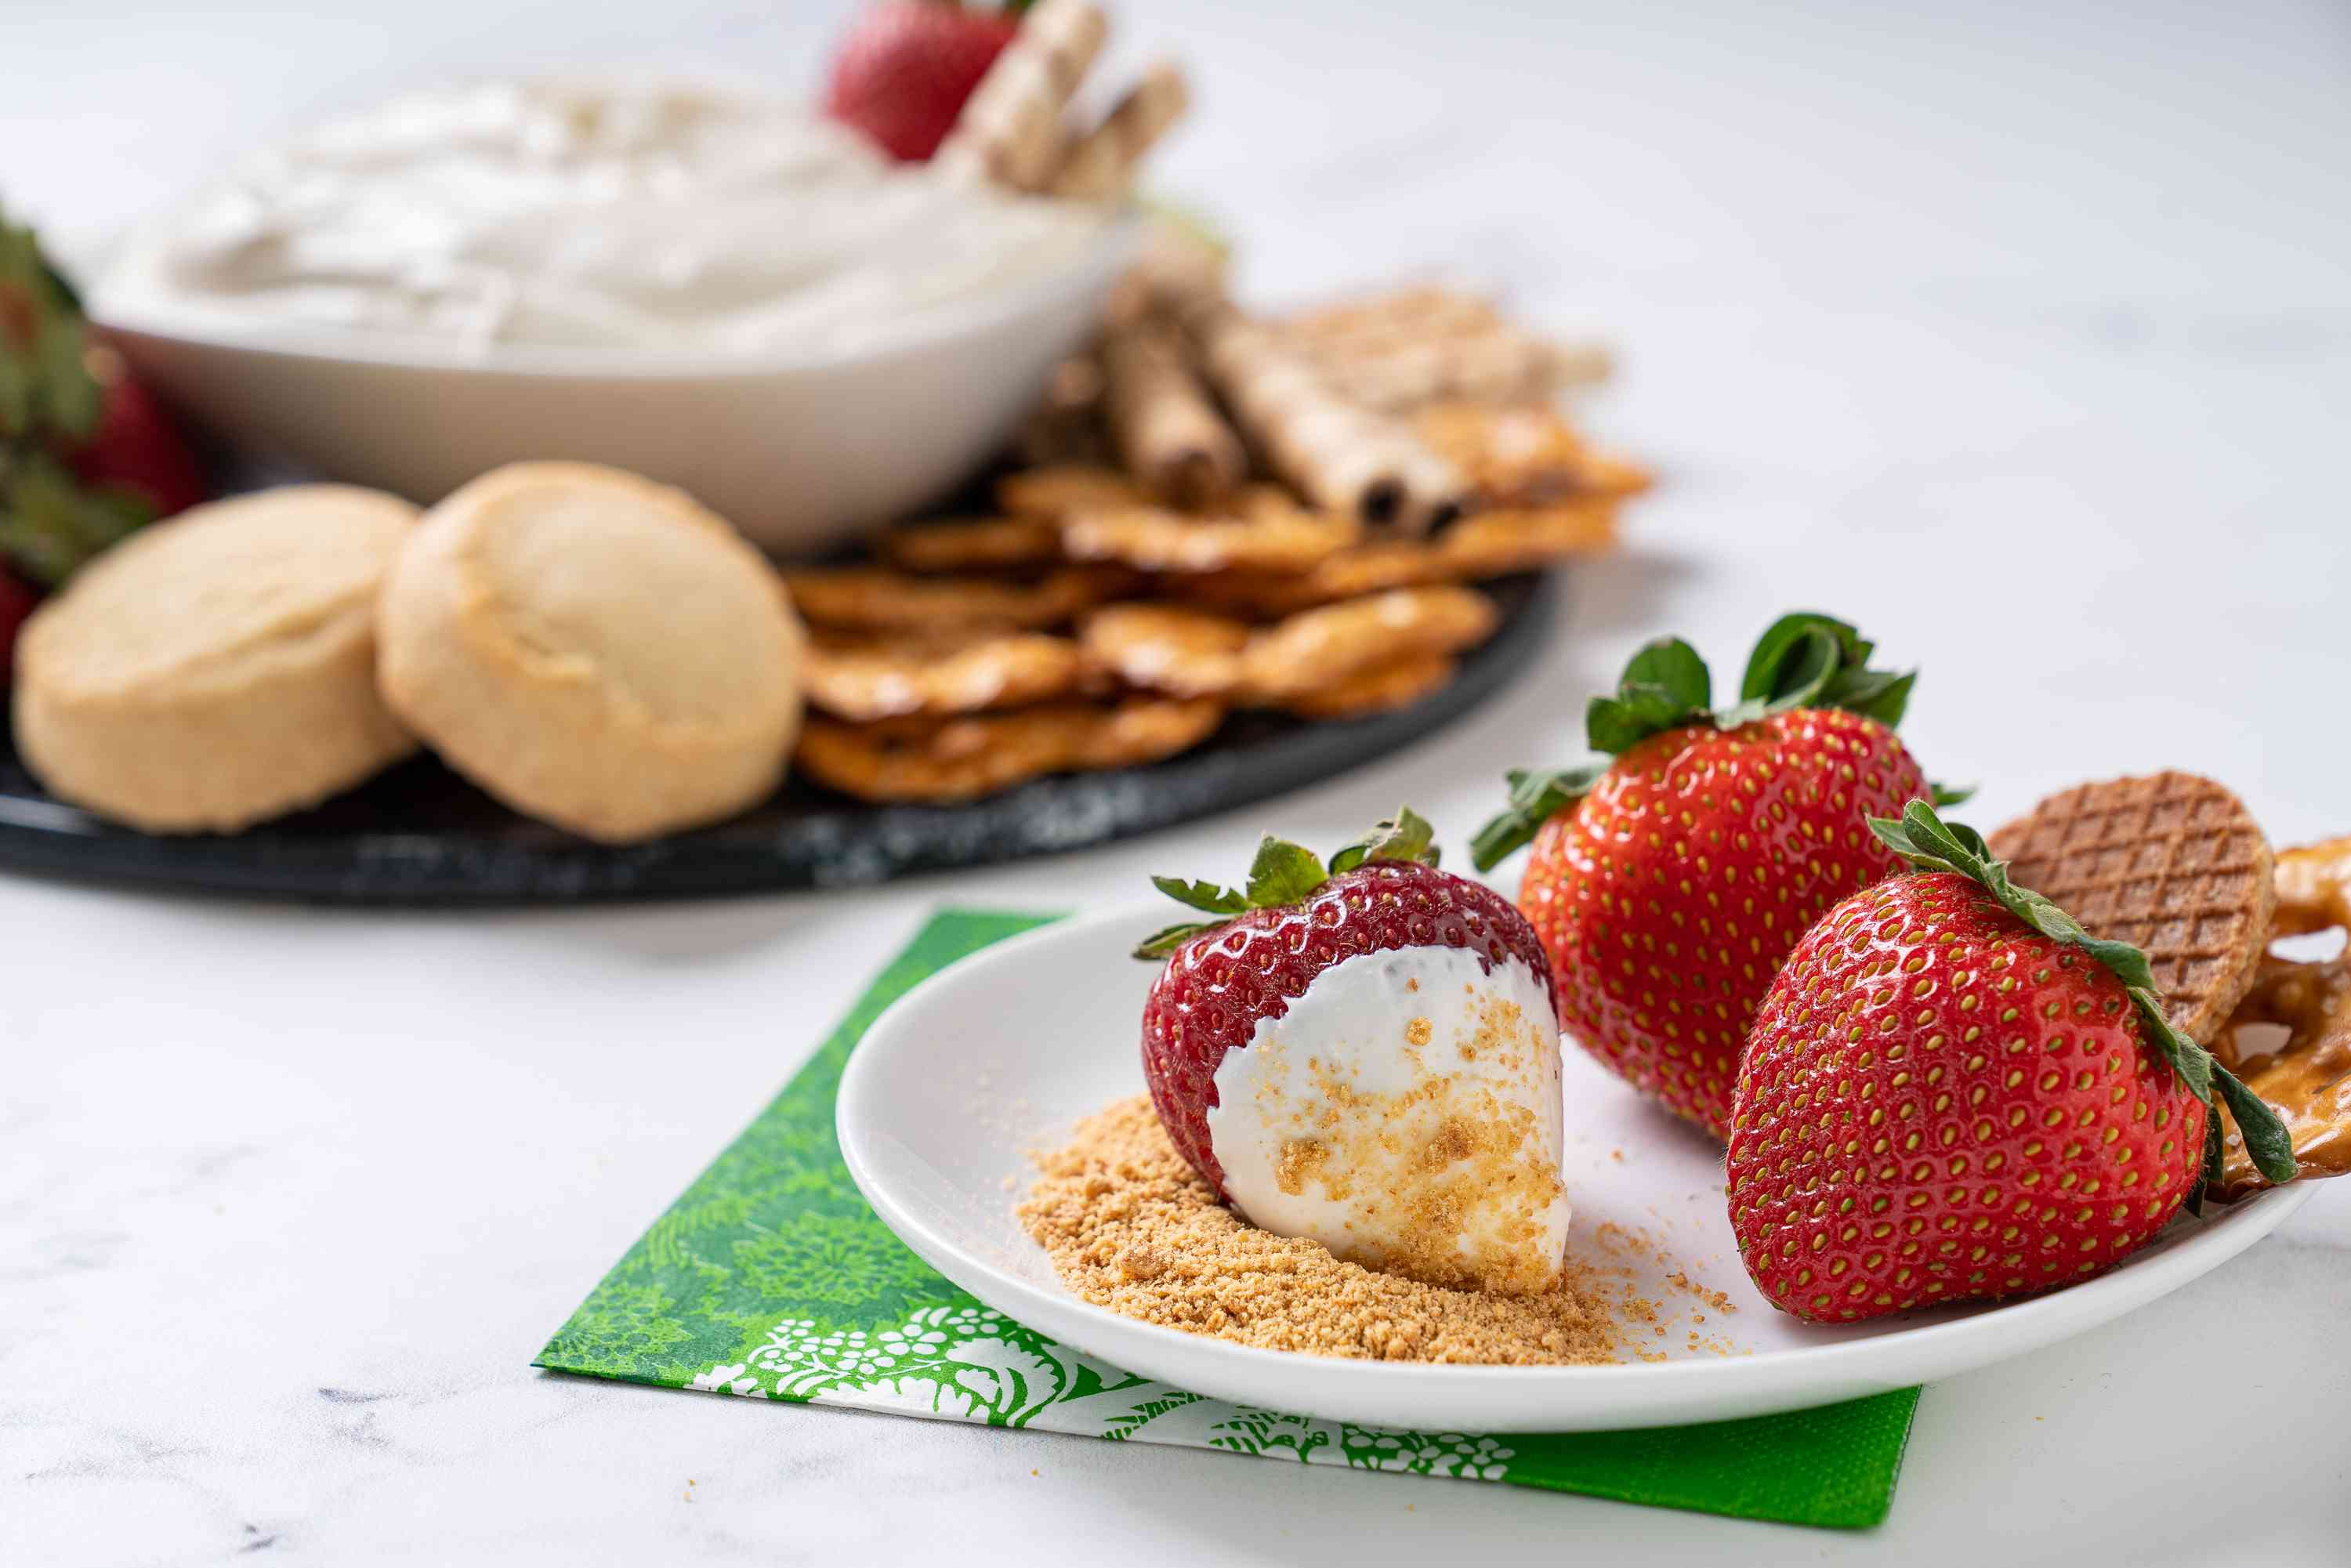 Cheesecake Dip served with strawberries and graham crackers